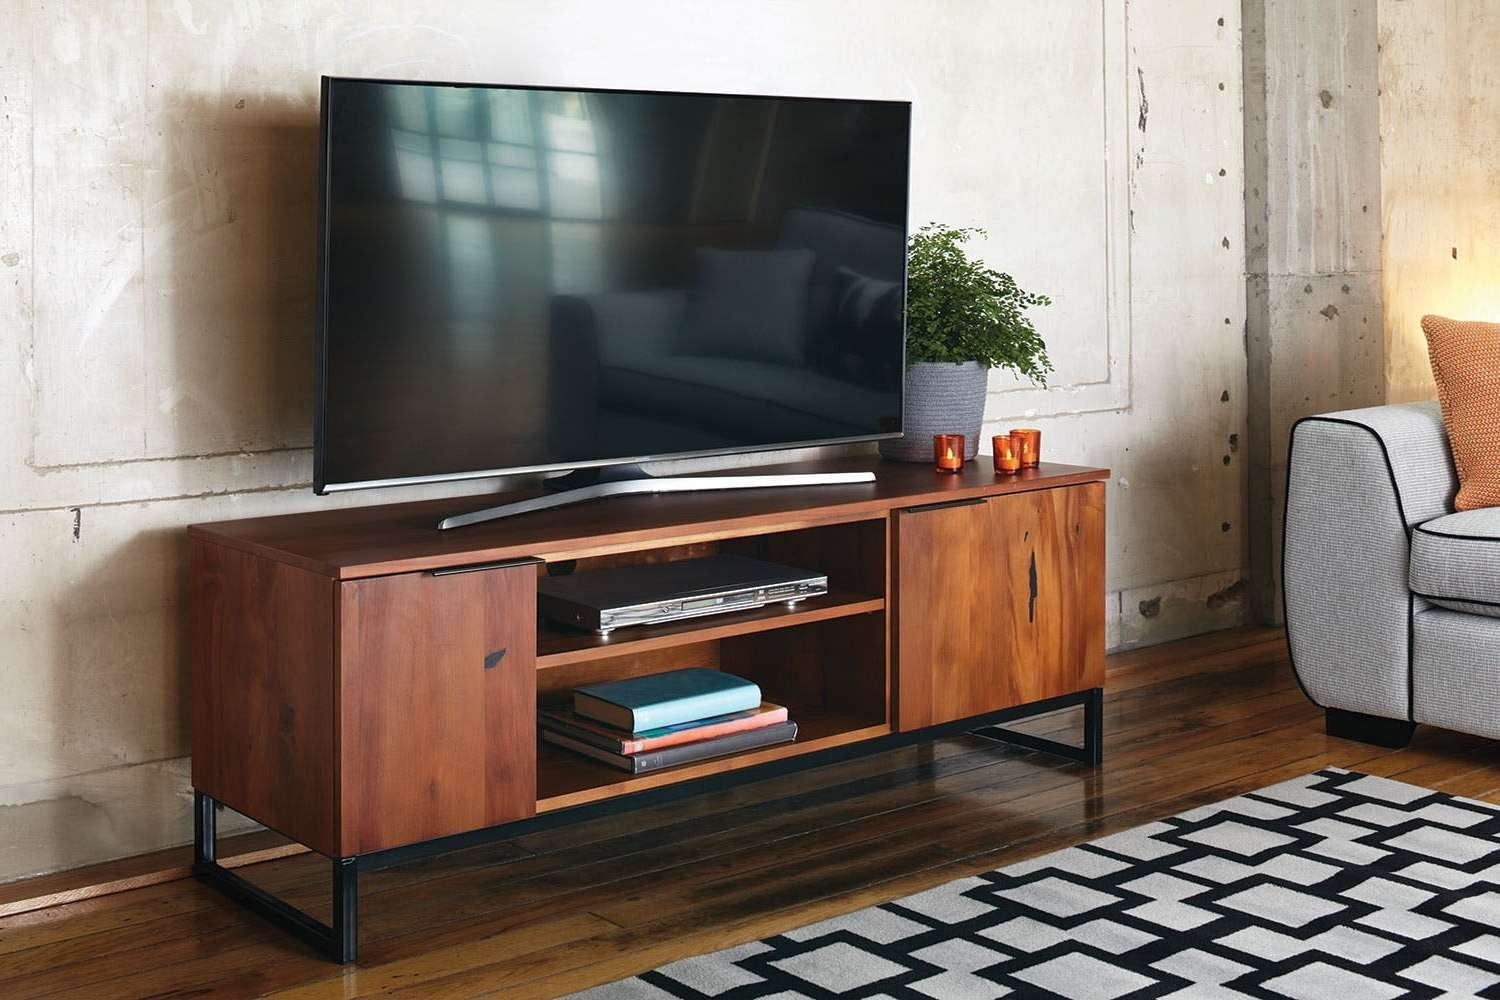 Supreme Flat Screen Narrow Tv Stand And Magazine Shelf Brown Pertaining To Honey Oak Tv Stands (View 3 of 15)